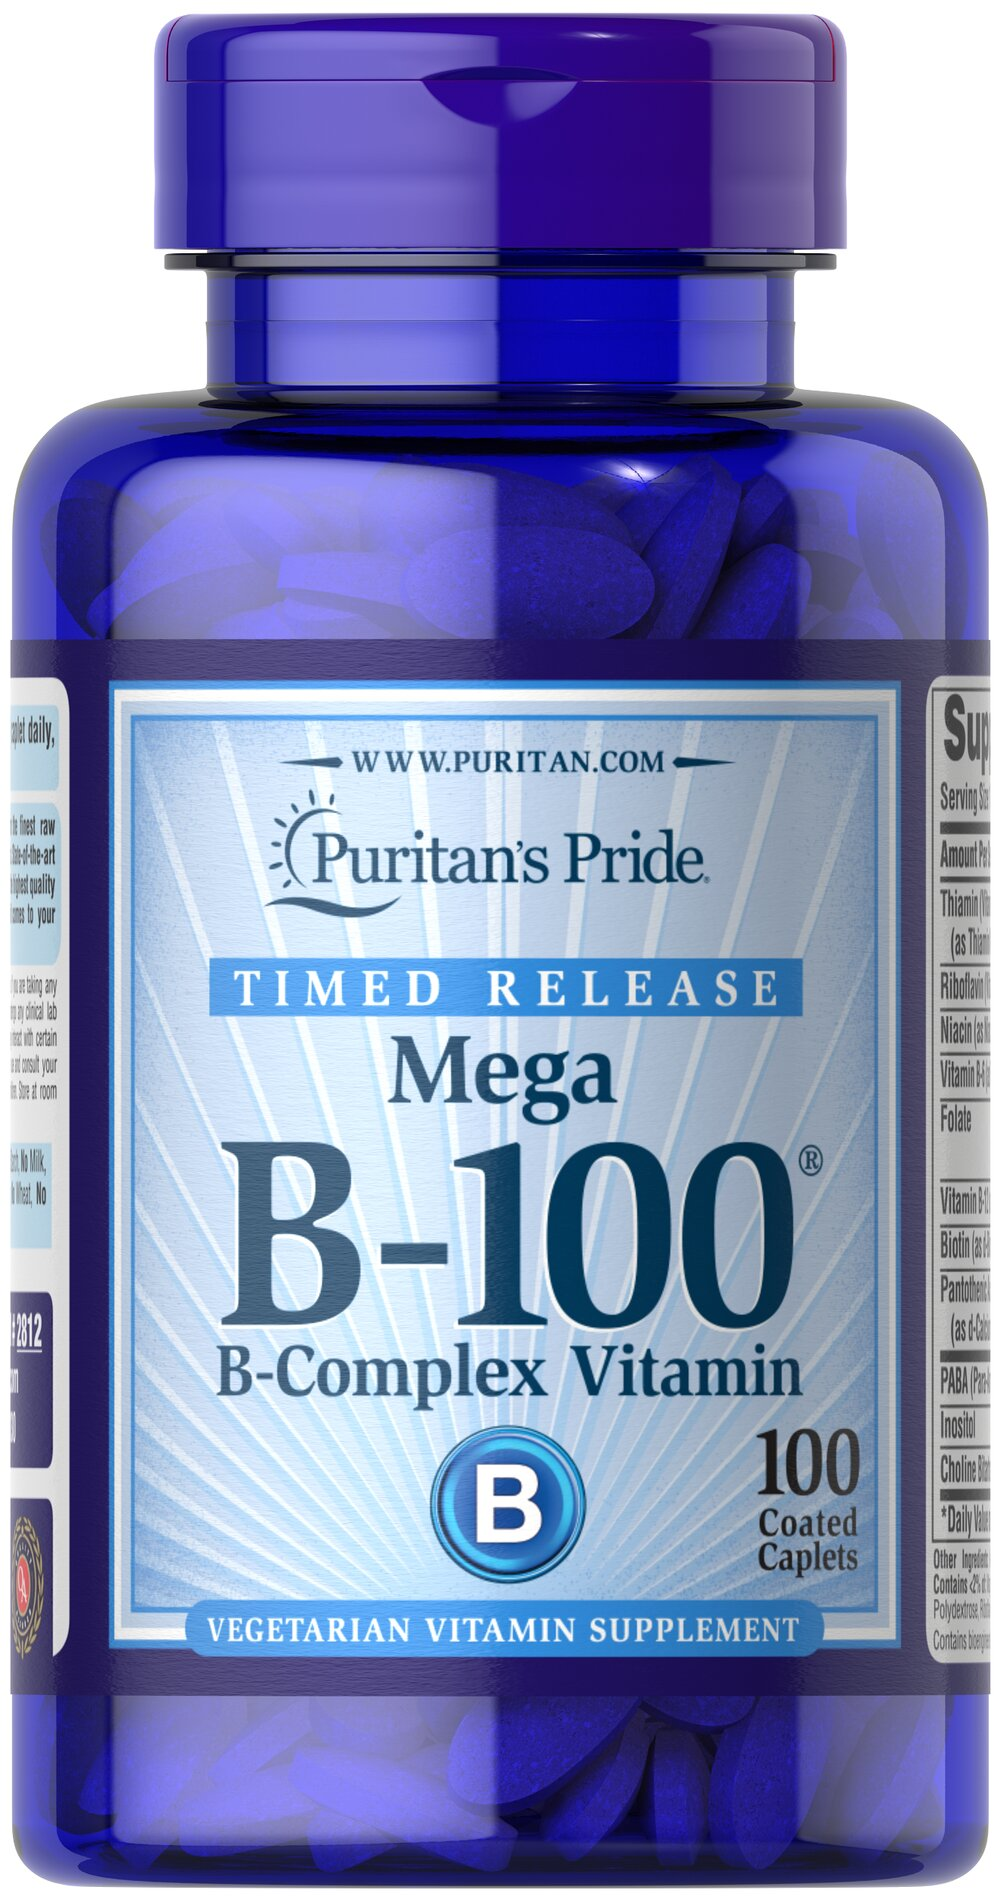 Vitamin B-100® Complex Timed Release <p>Each nutrient in the Vitamin B-100® Complex performs a unique role in maintaining proper metabolic functioning and is essential for well being.** When taken together in a complex formula, the B Vitamins help to maintain the health of the nervous system, skin, eyes and hair.** This product is specially formulated to provide a gradual release of vitamins over a prolonged period of time.</p>  100 Tablets 100 mg $31.99